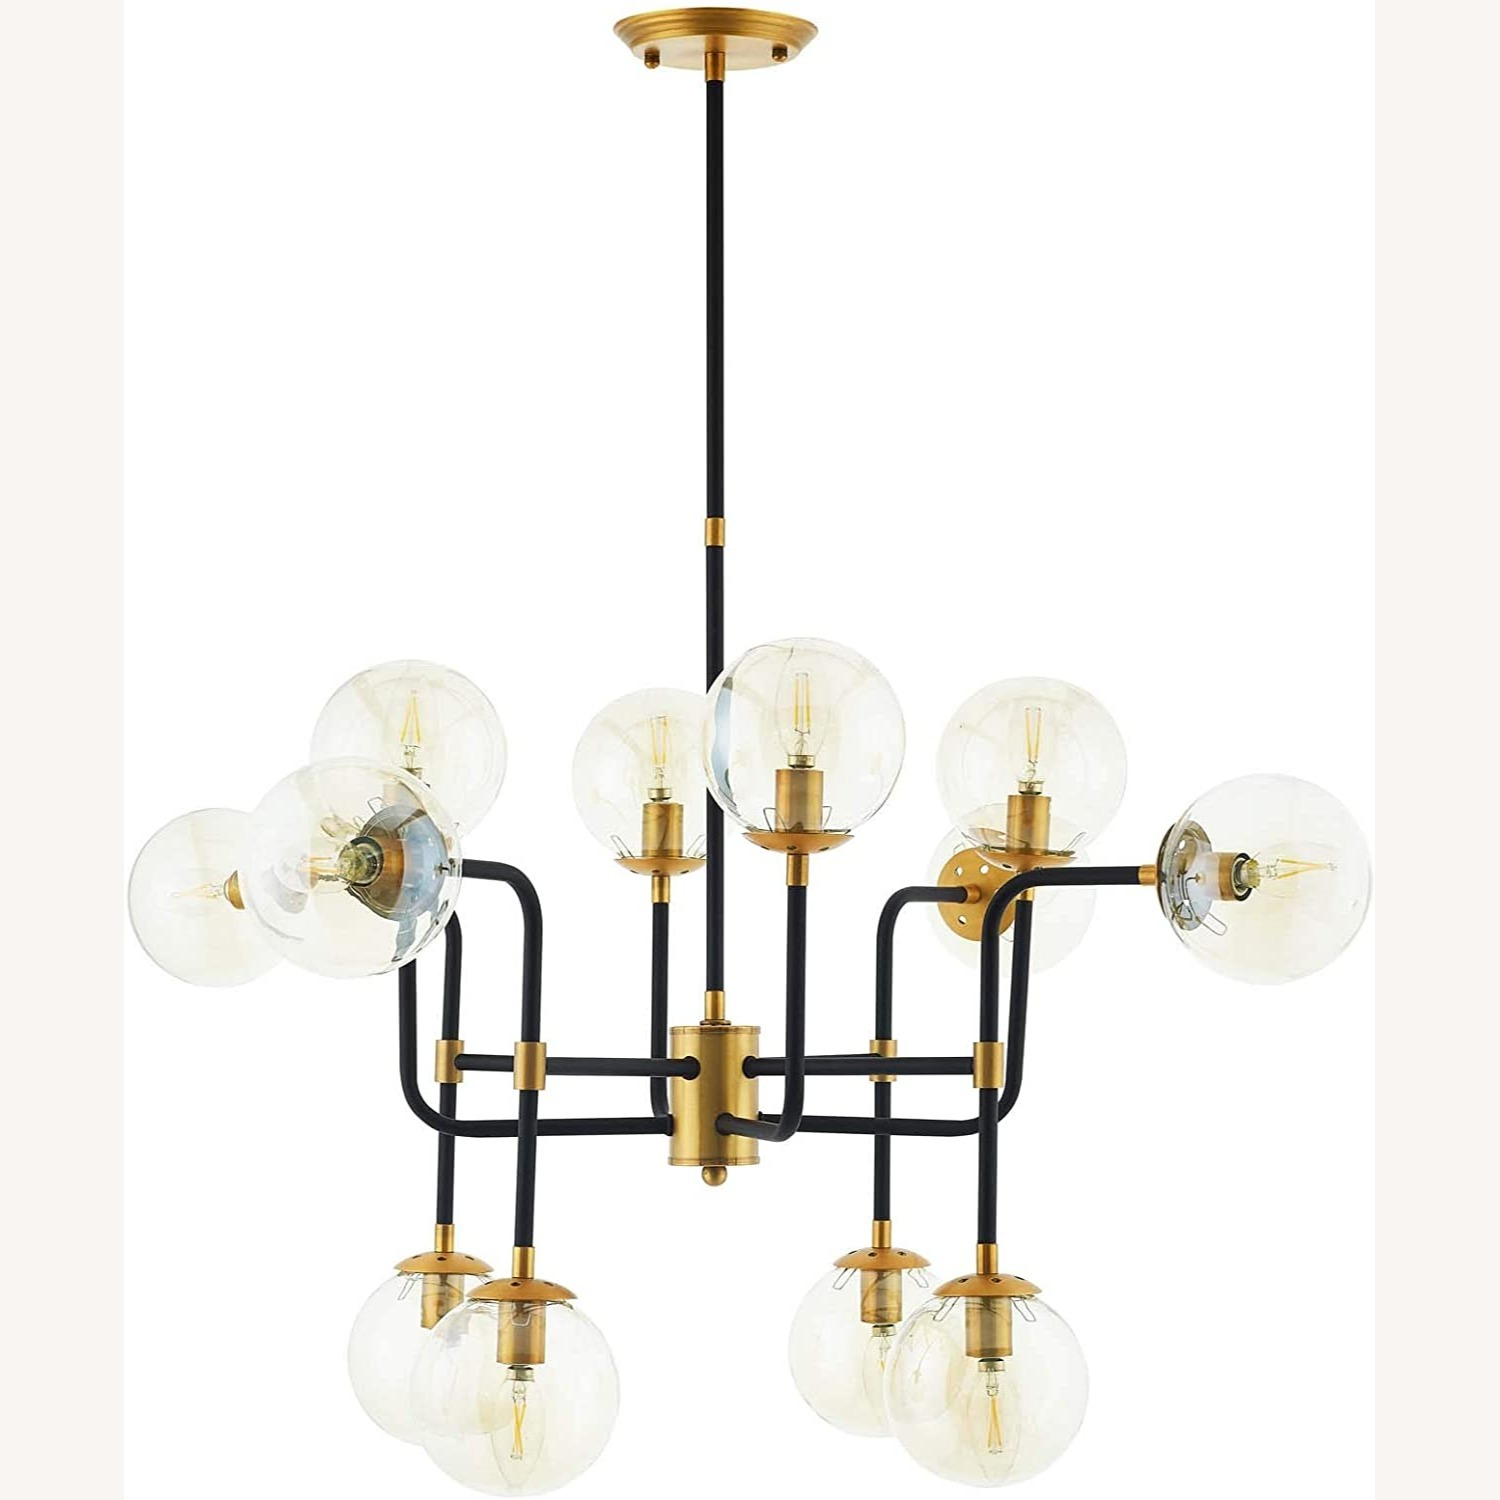 Classic Pendant Chandelier In Antique Brass Finish - image-0